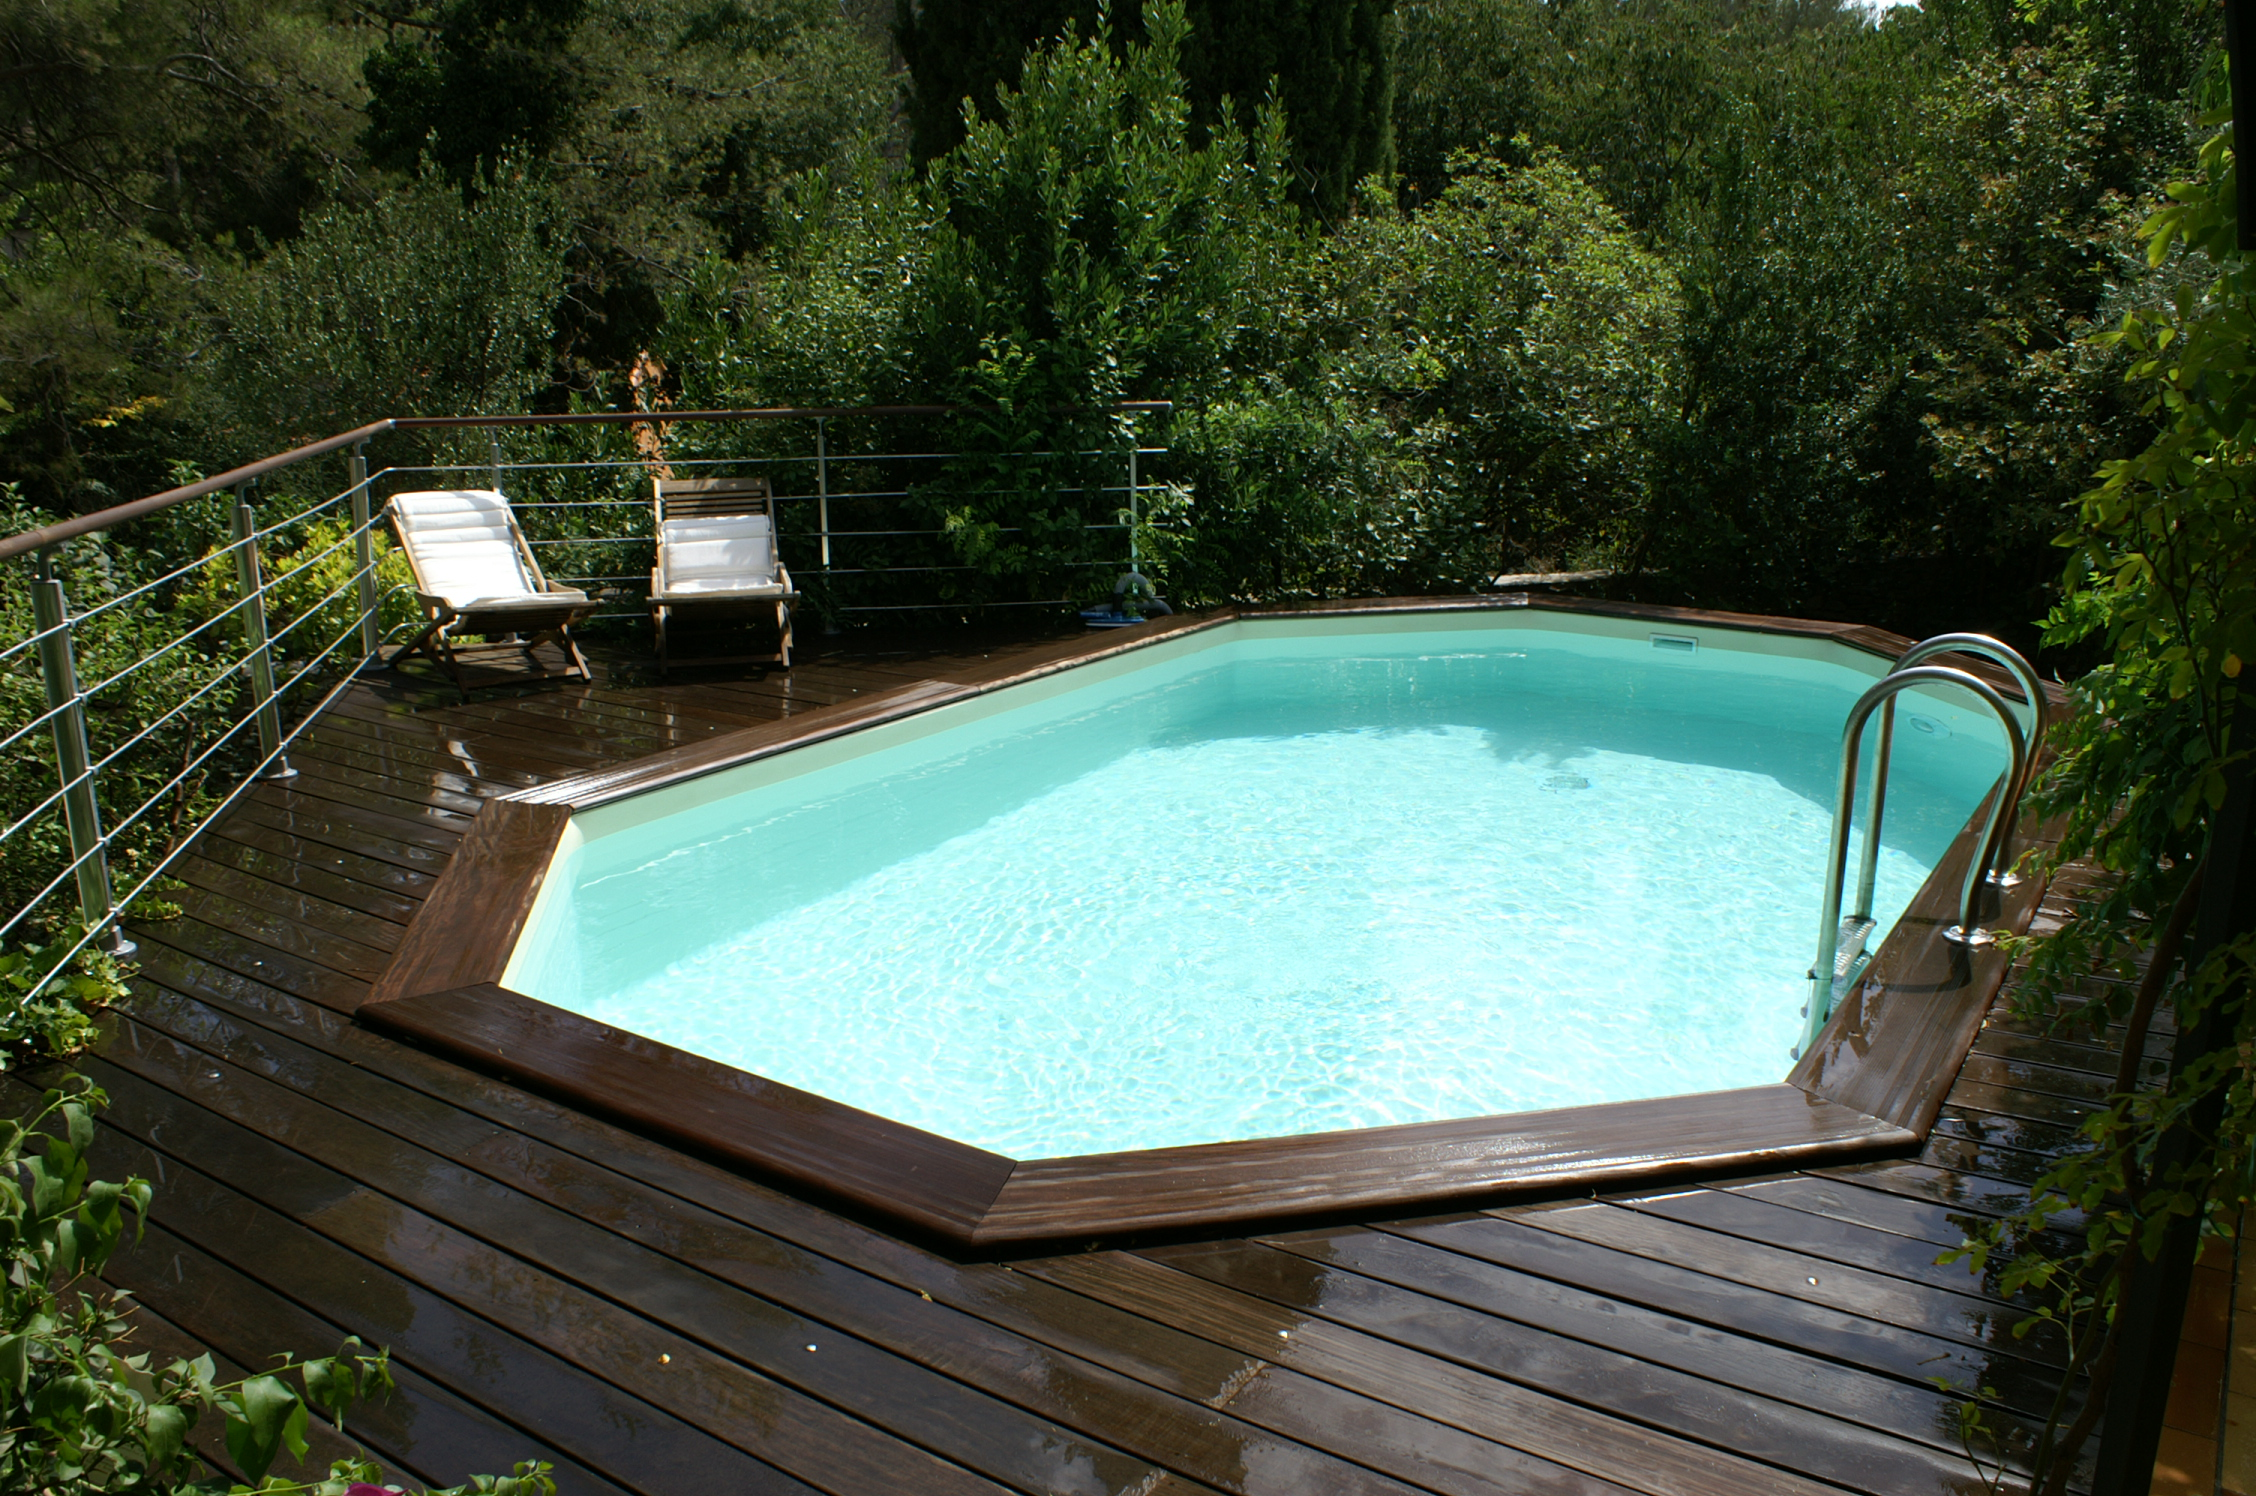 Construction piscines nimes gepad piscines et spa 30000 for Piscine hors sol imposable